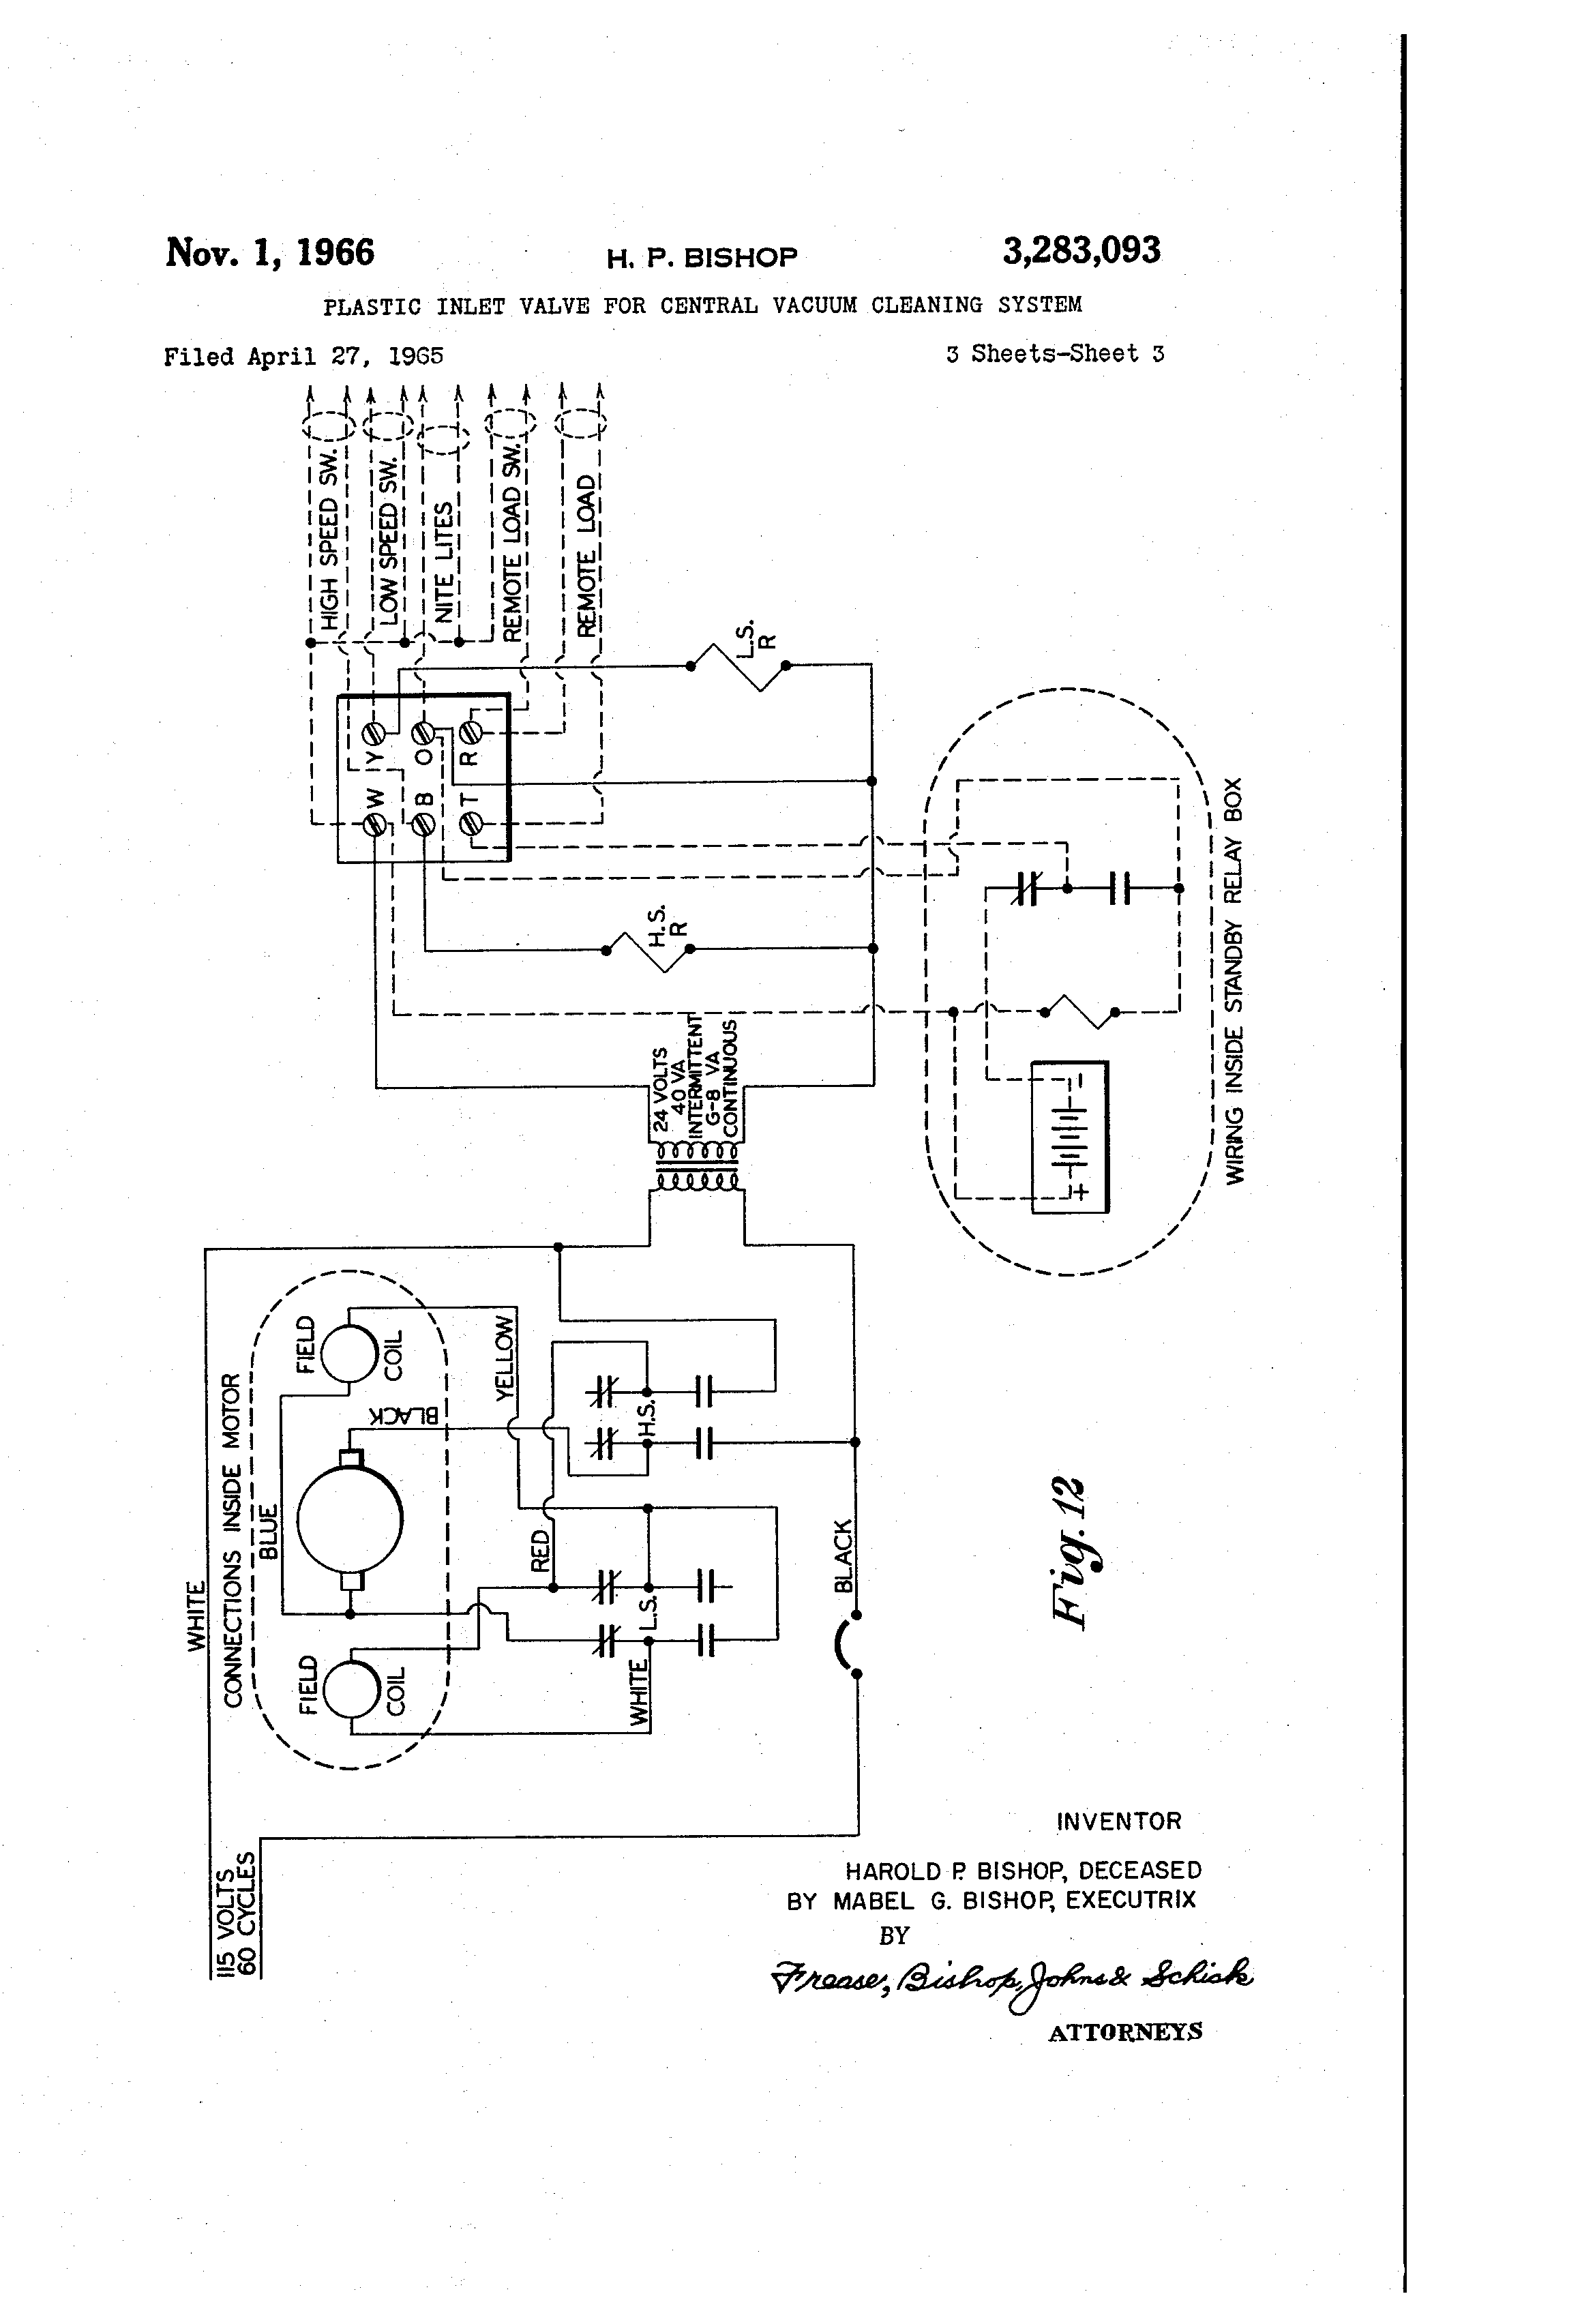 US3283093 2 patent us3283093 plastic inlet valve for central vacuum cleaning central vacuum wiring diagram at alyssarenee.co